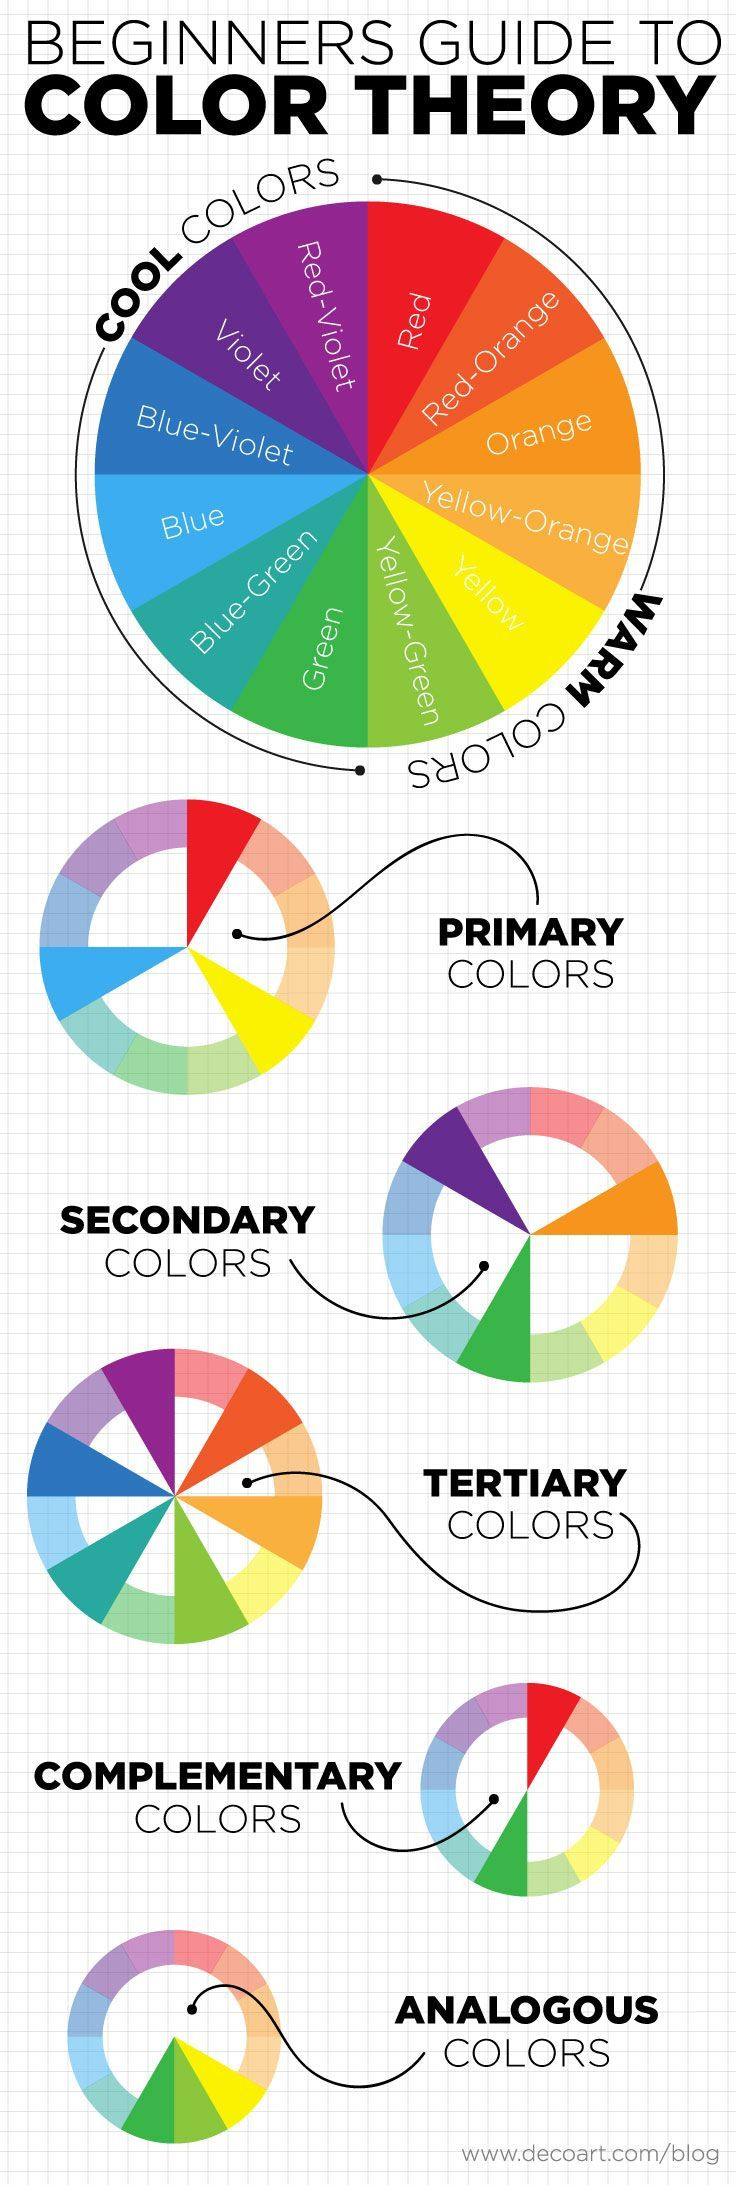 DecoArt Blog - NA - Color Theory Basics: The Color Wheel   Colorful ;)   Pinterest   Color ...